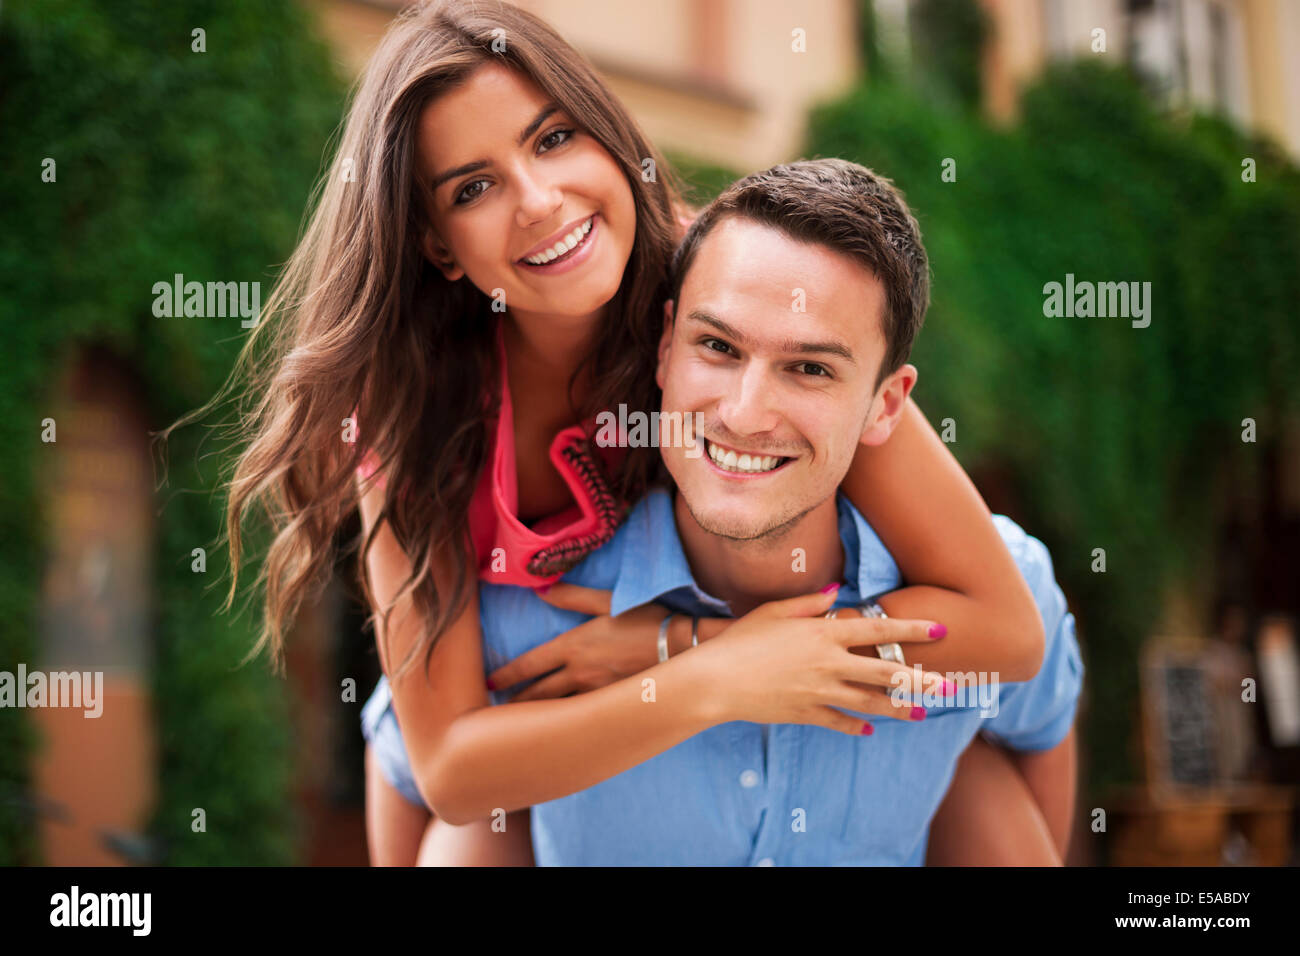 Young couple having a great time together, Debica, Poland - Stock Image